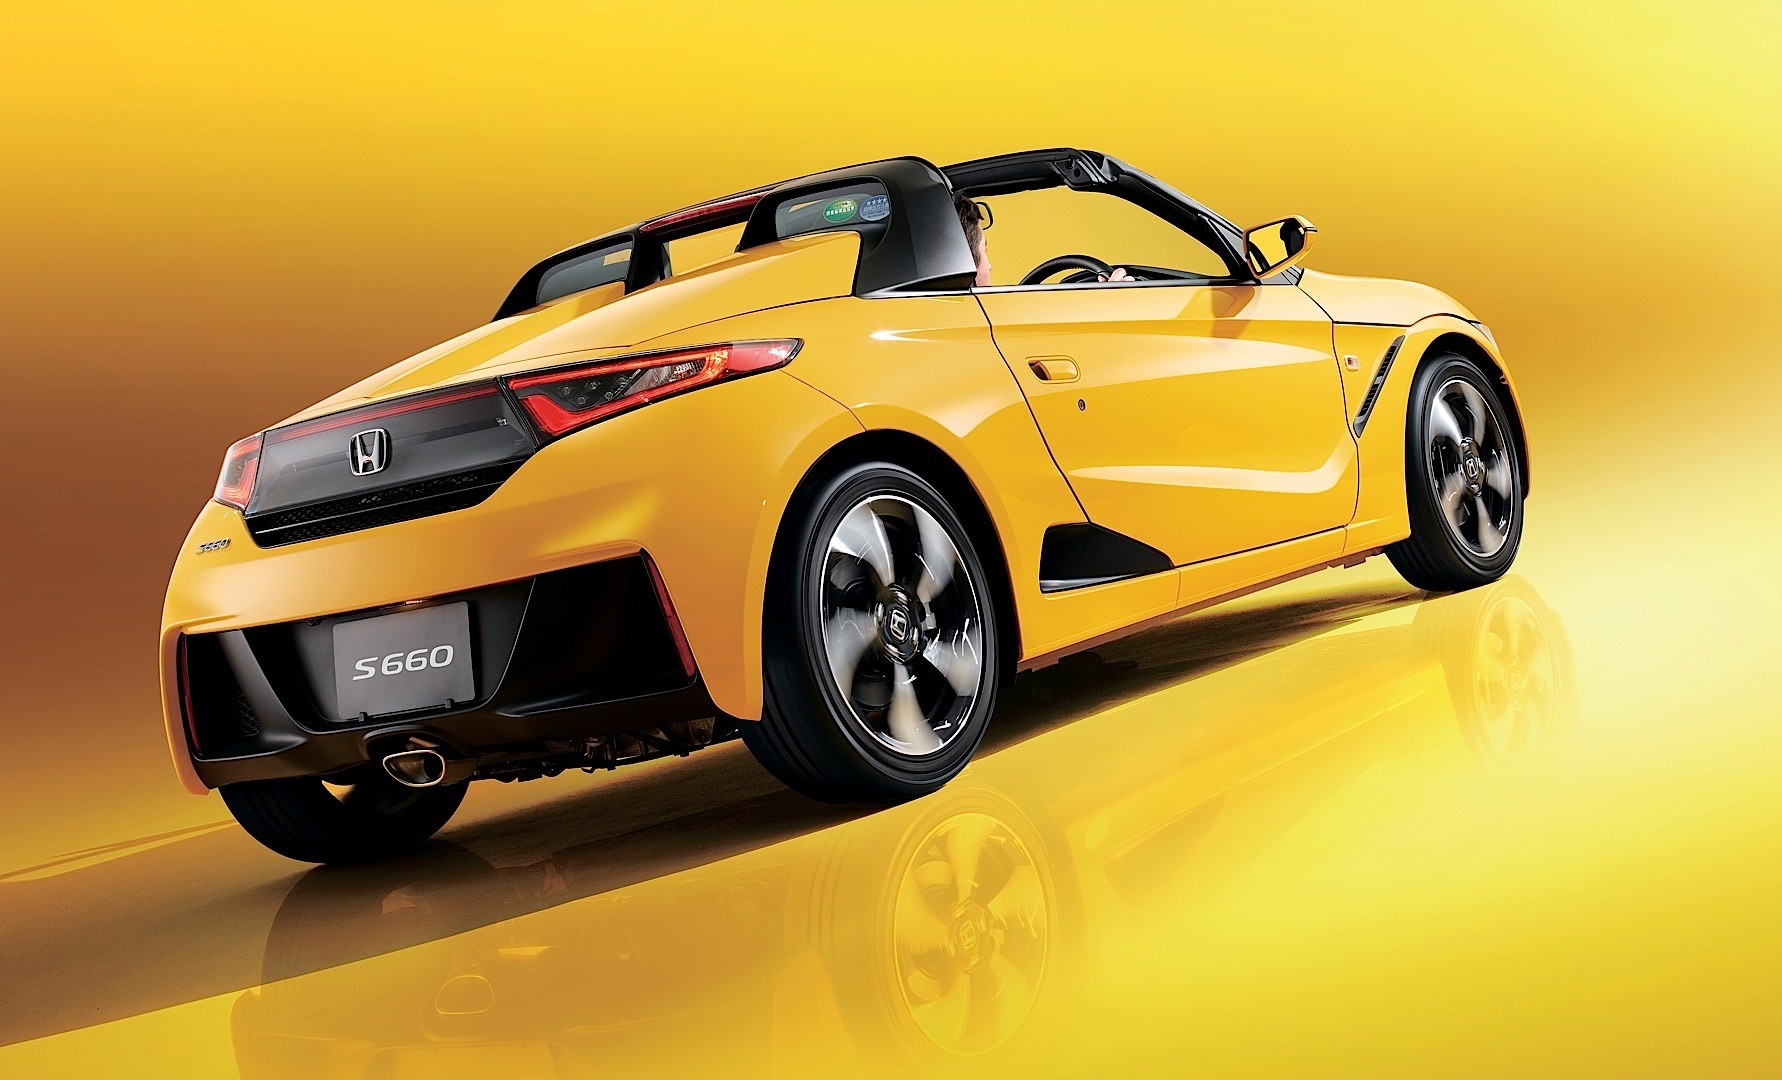 Honda S660 Specs Photos 2015 2016 2017 2018 2019 Autoevolution